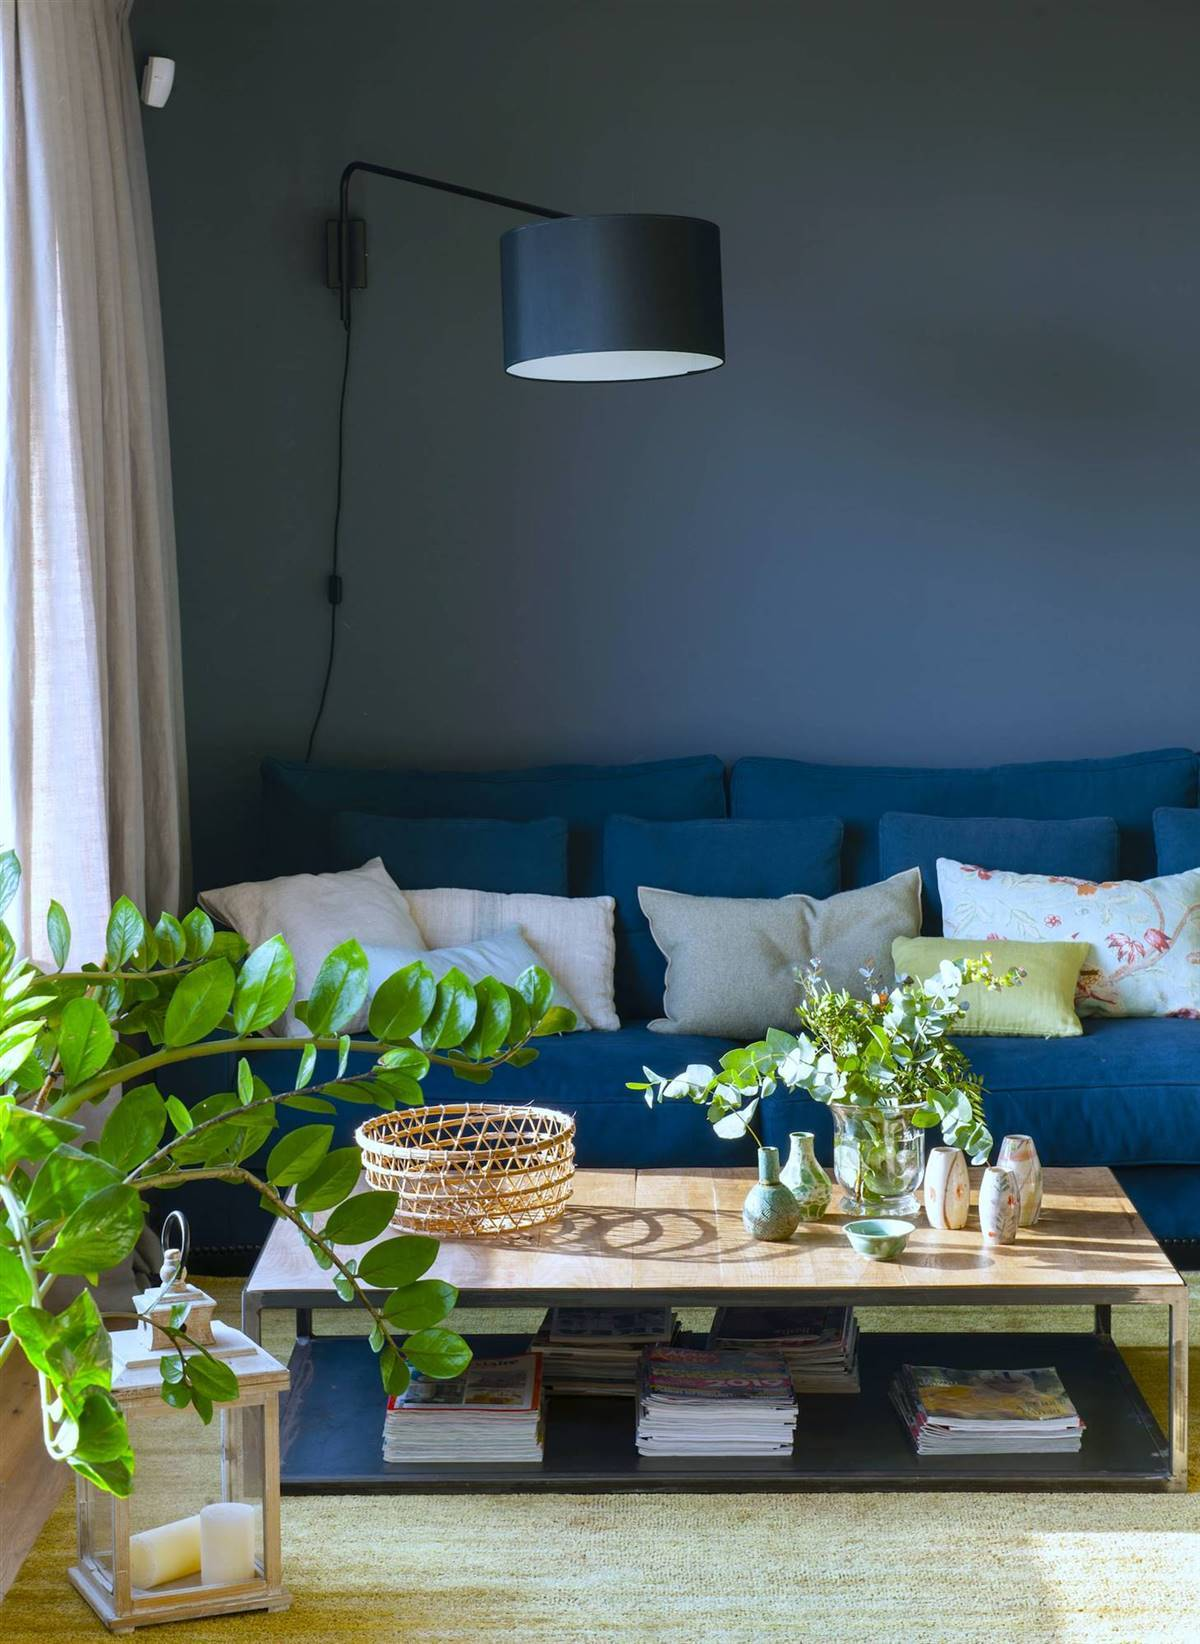 color-pantone-classic-blue-sofa-salon-con-lampara-y-cojines-colores-00500600 f4d7d0f7 1200x1644. NUEVO LOOK